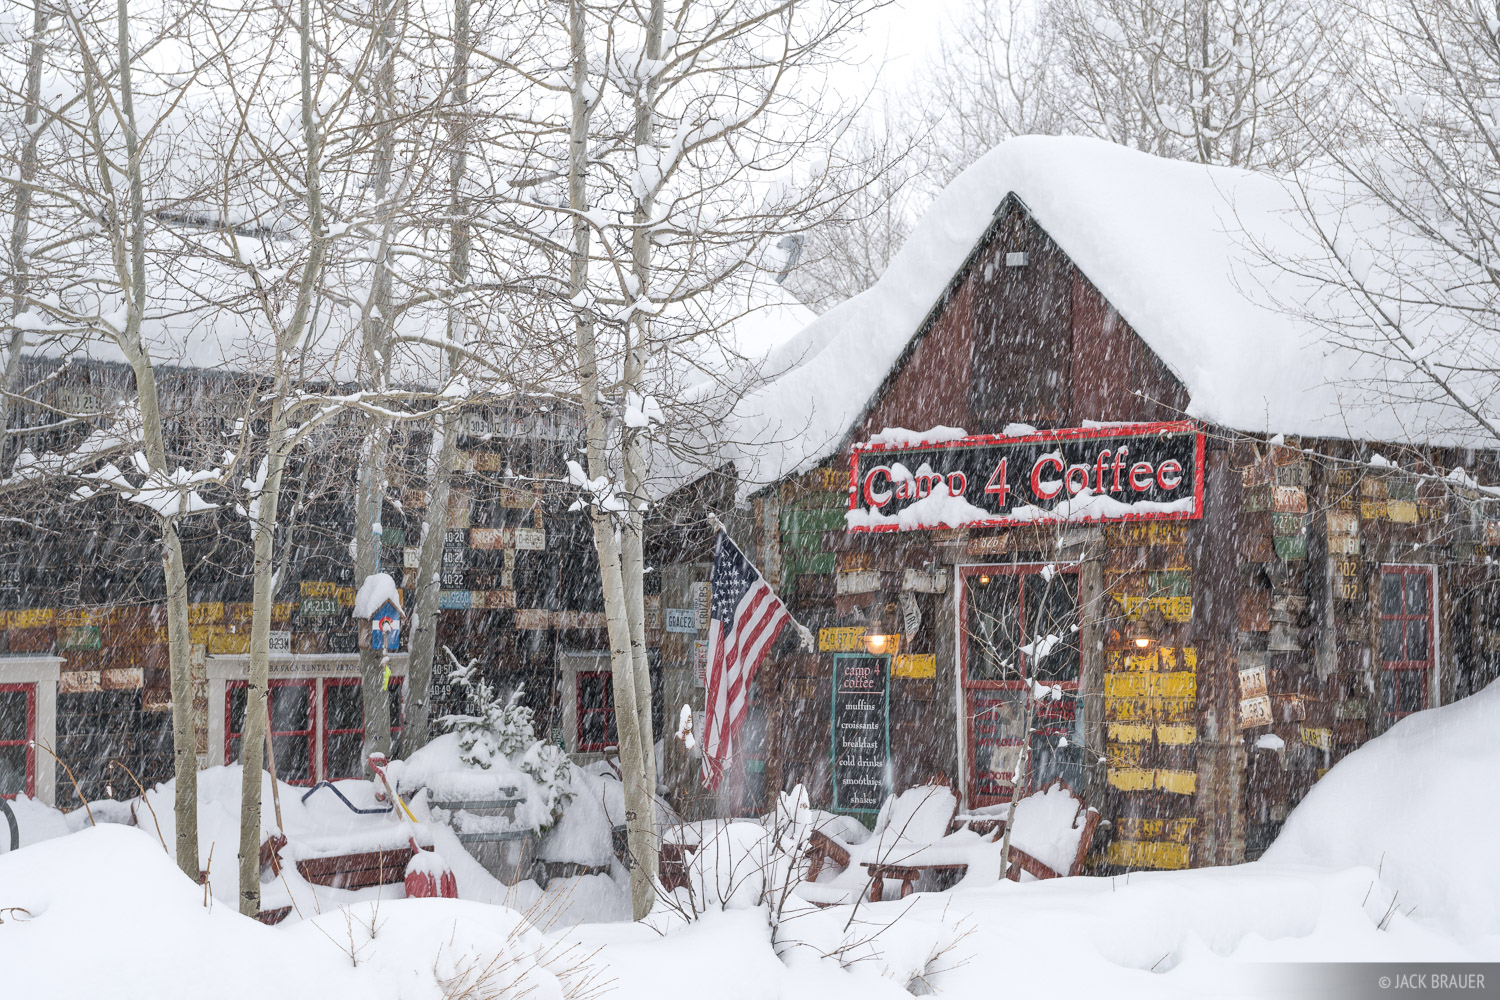 Colorado, Crested Butte, Camp 4 Coffee, snow, snowy, January, photo